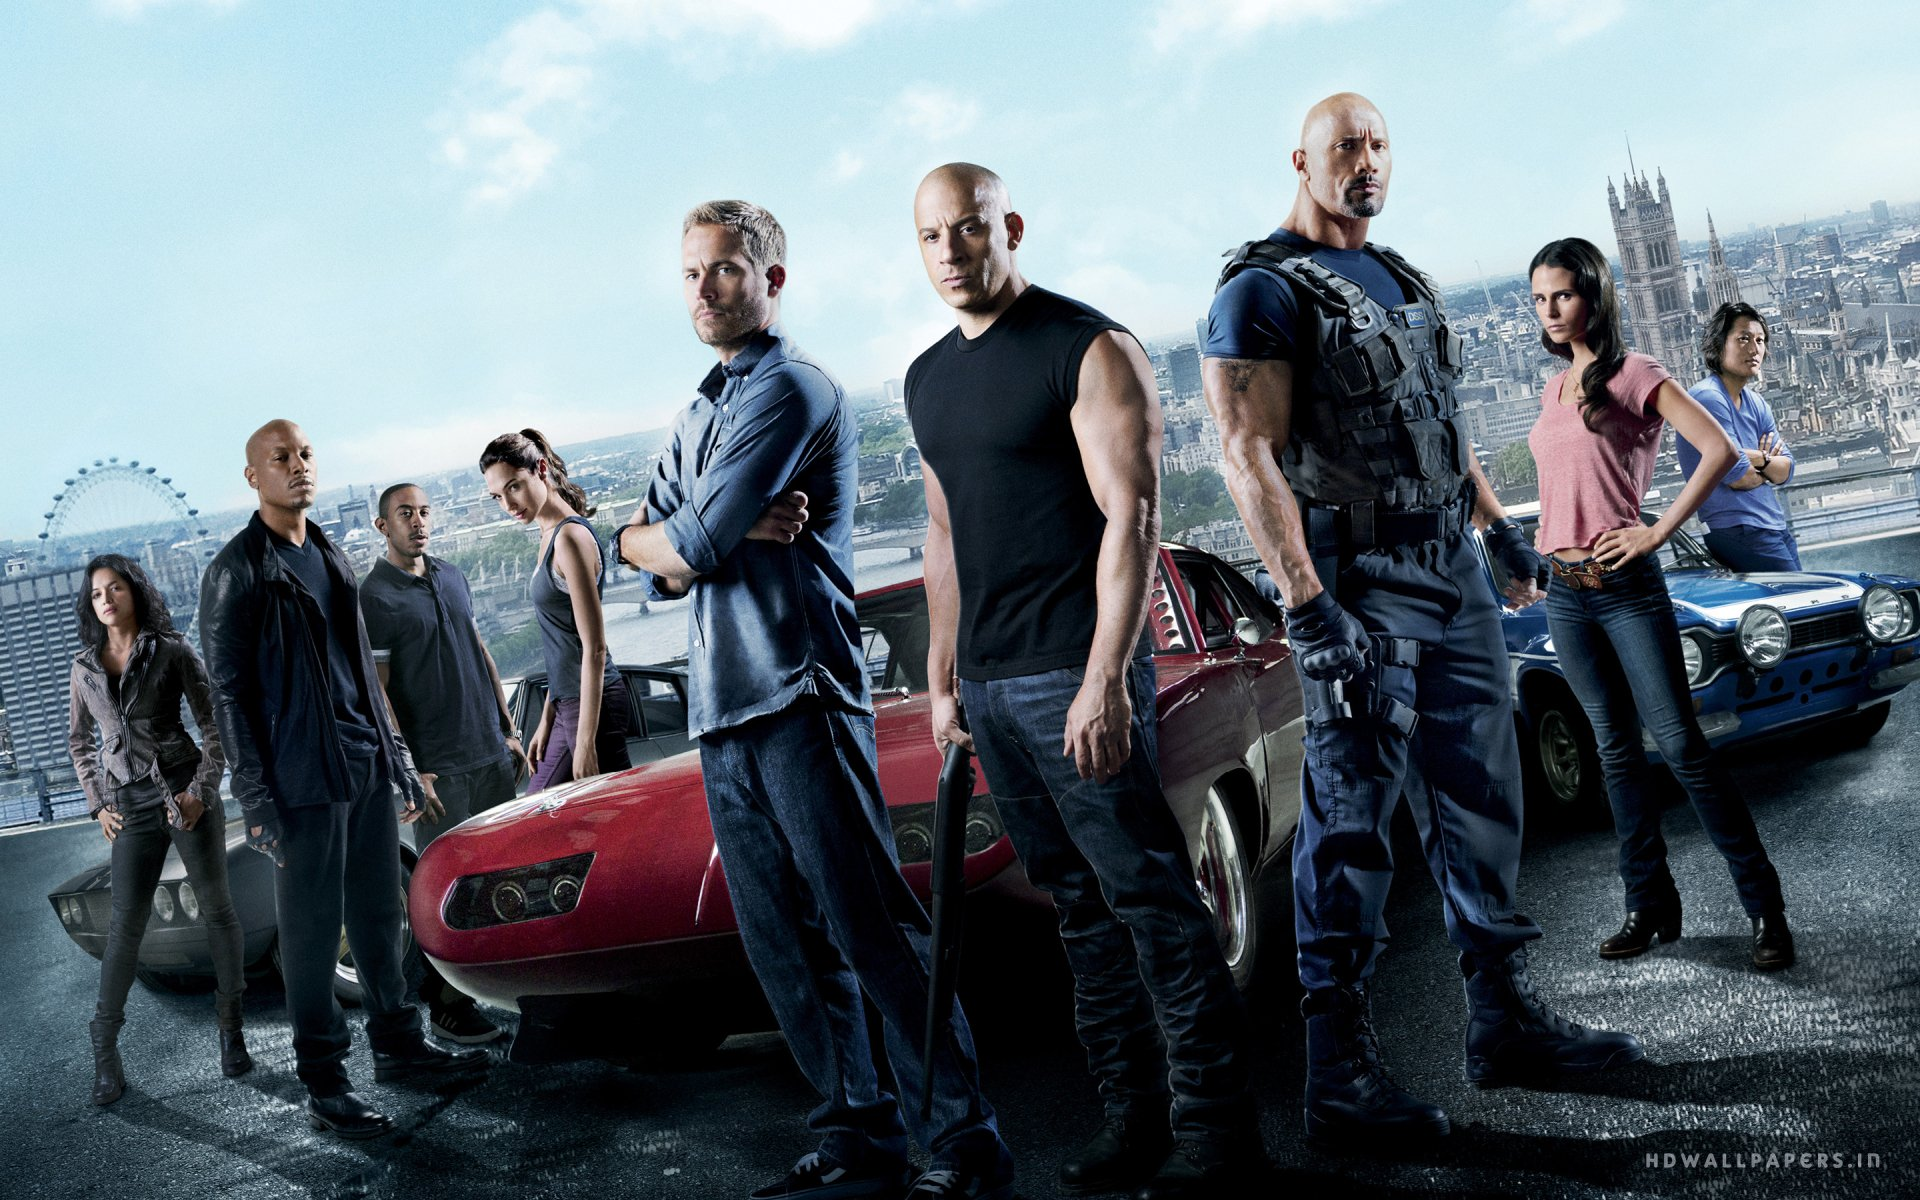 Movie - Fast & Furious 6  Fast & Furious Tej (Fast & Furious) Ludacris Gisele Harabo Gal Gadot Han (Fast & Furious) Sung Kang Roman Pearce Tyrese Gibson Mia Toretto Jordana Brewster Michelle Rodriguez Letty Ortiz Dwayne Johnson Luke Hobbs Vin Diesel Dominic Toretto Brian O'Conner Paul Walker Wallpaper